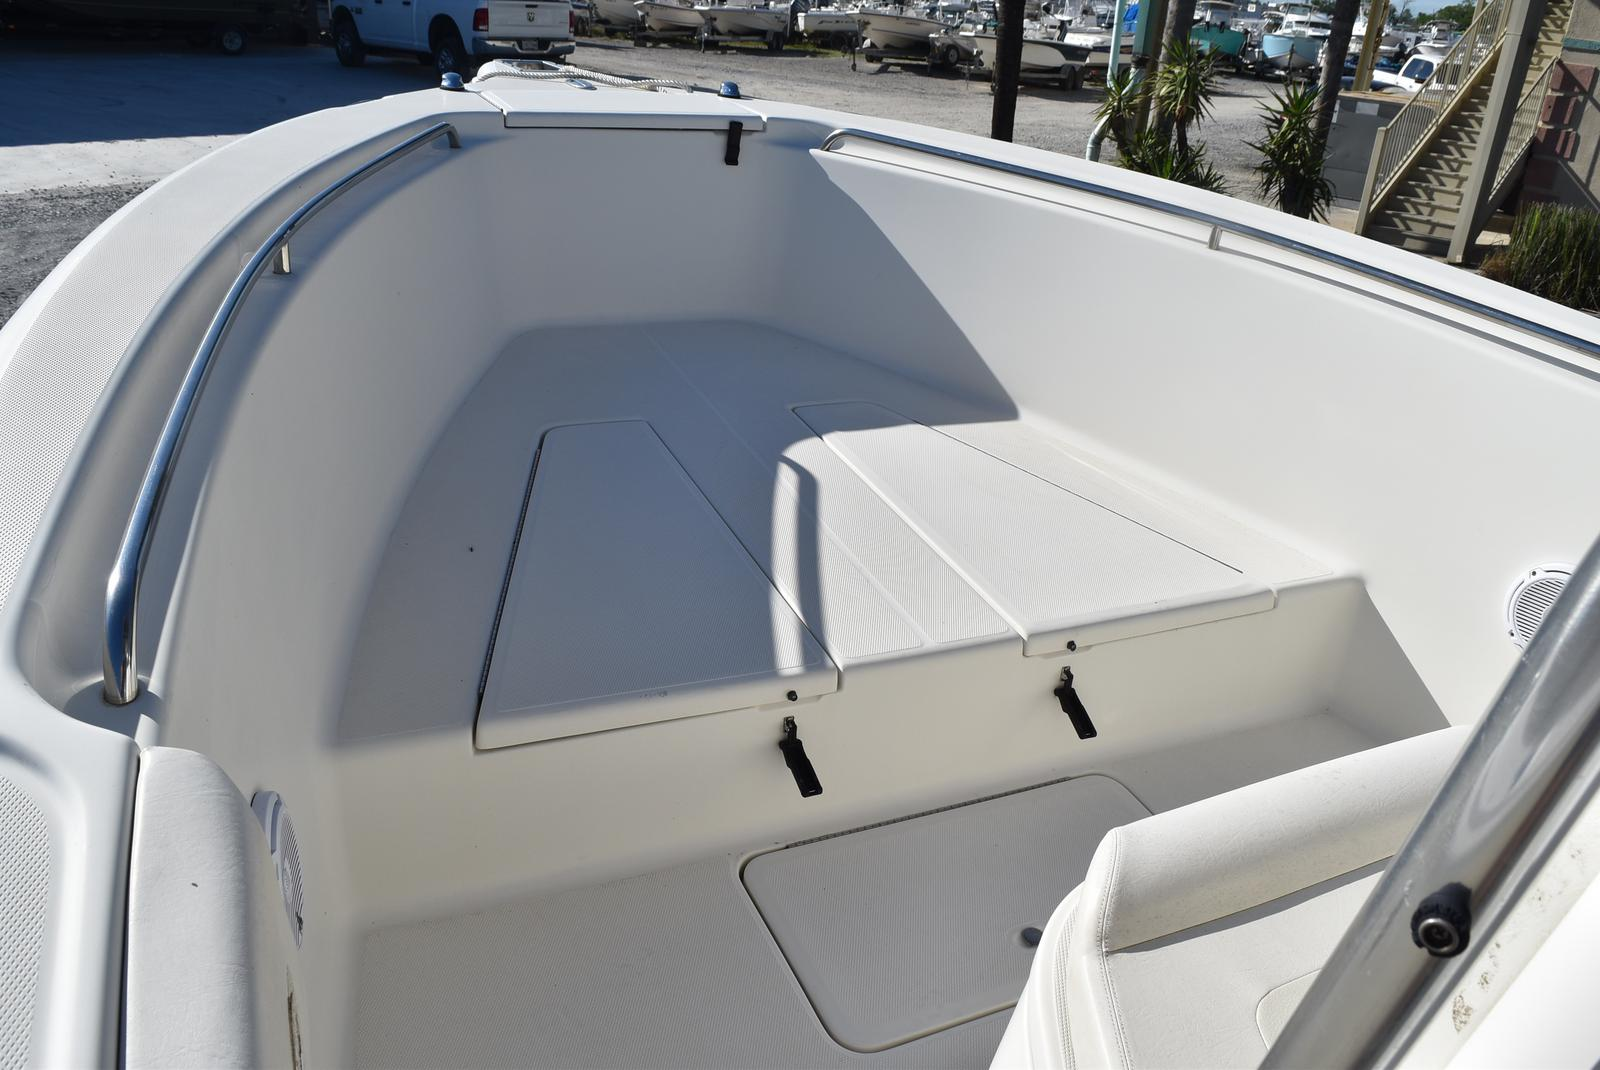 2006 Triton boat for sale, model of the boat is 2486 & Image # 5 of 24